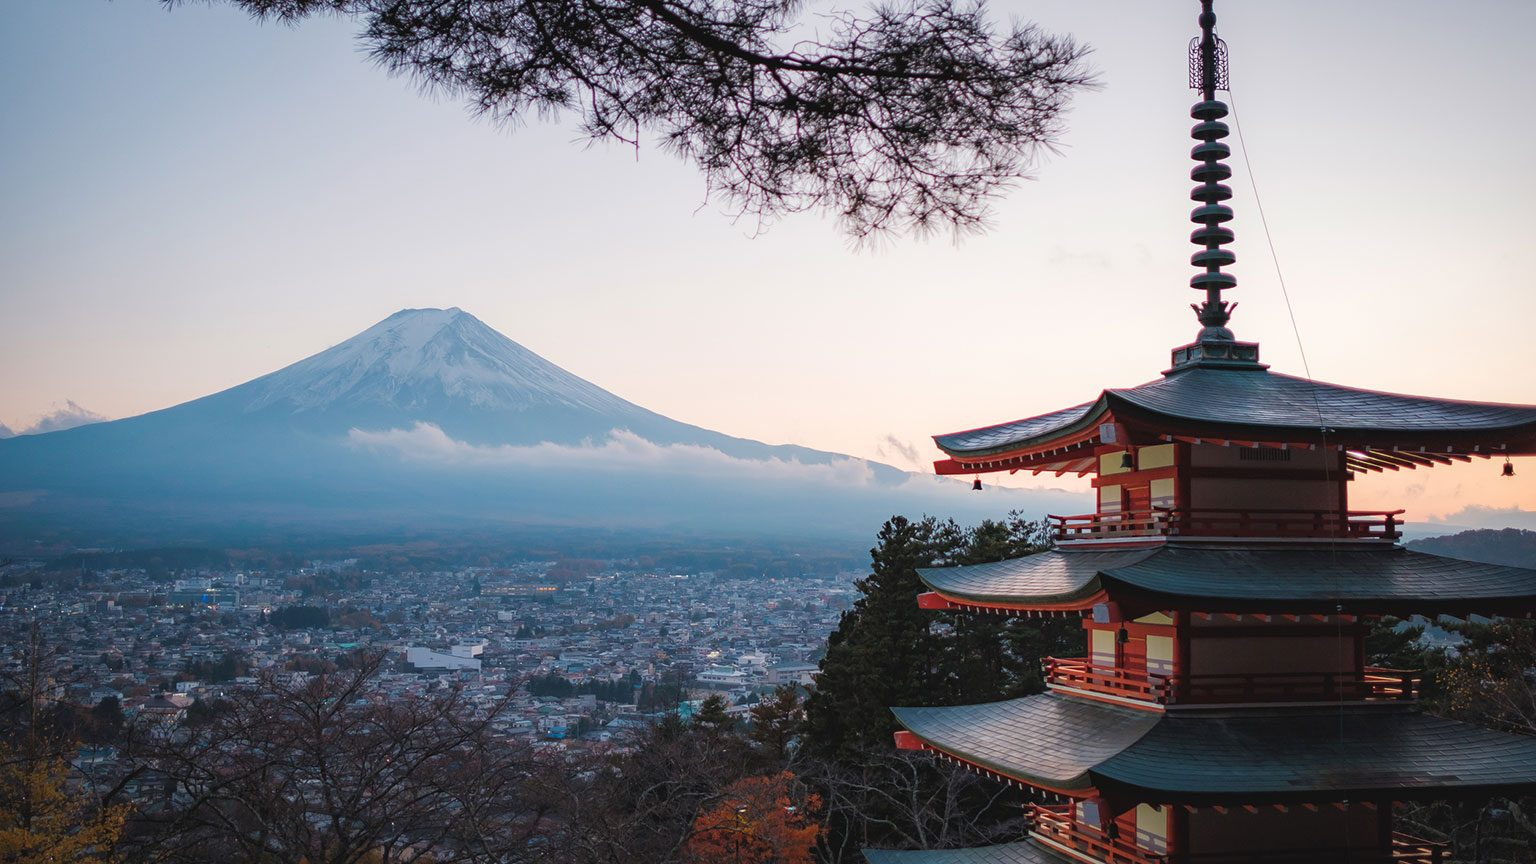 Temple with Mt. Fuji in background in Japan